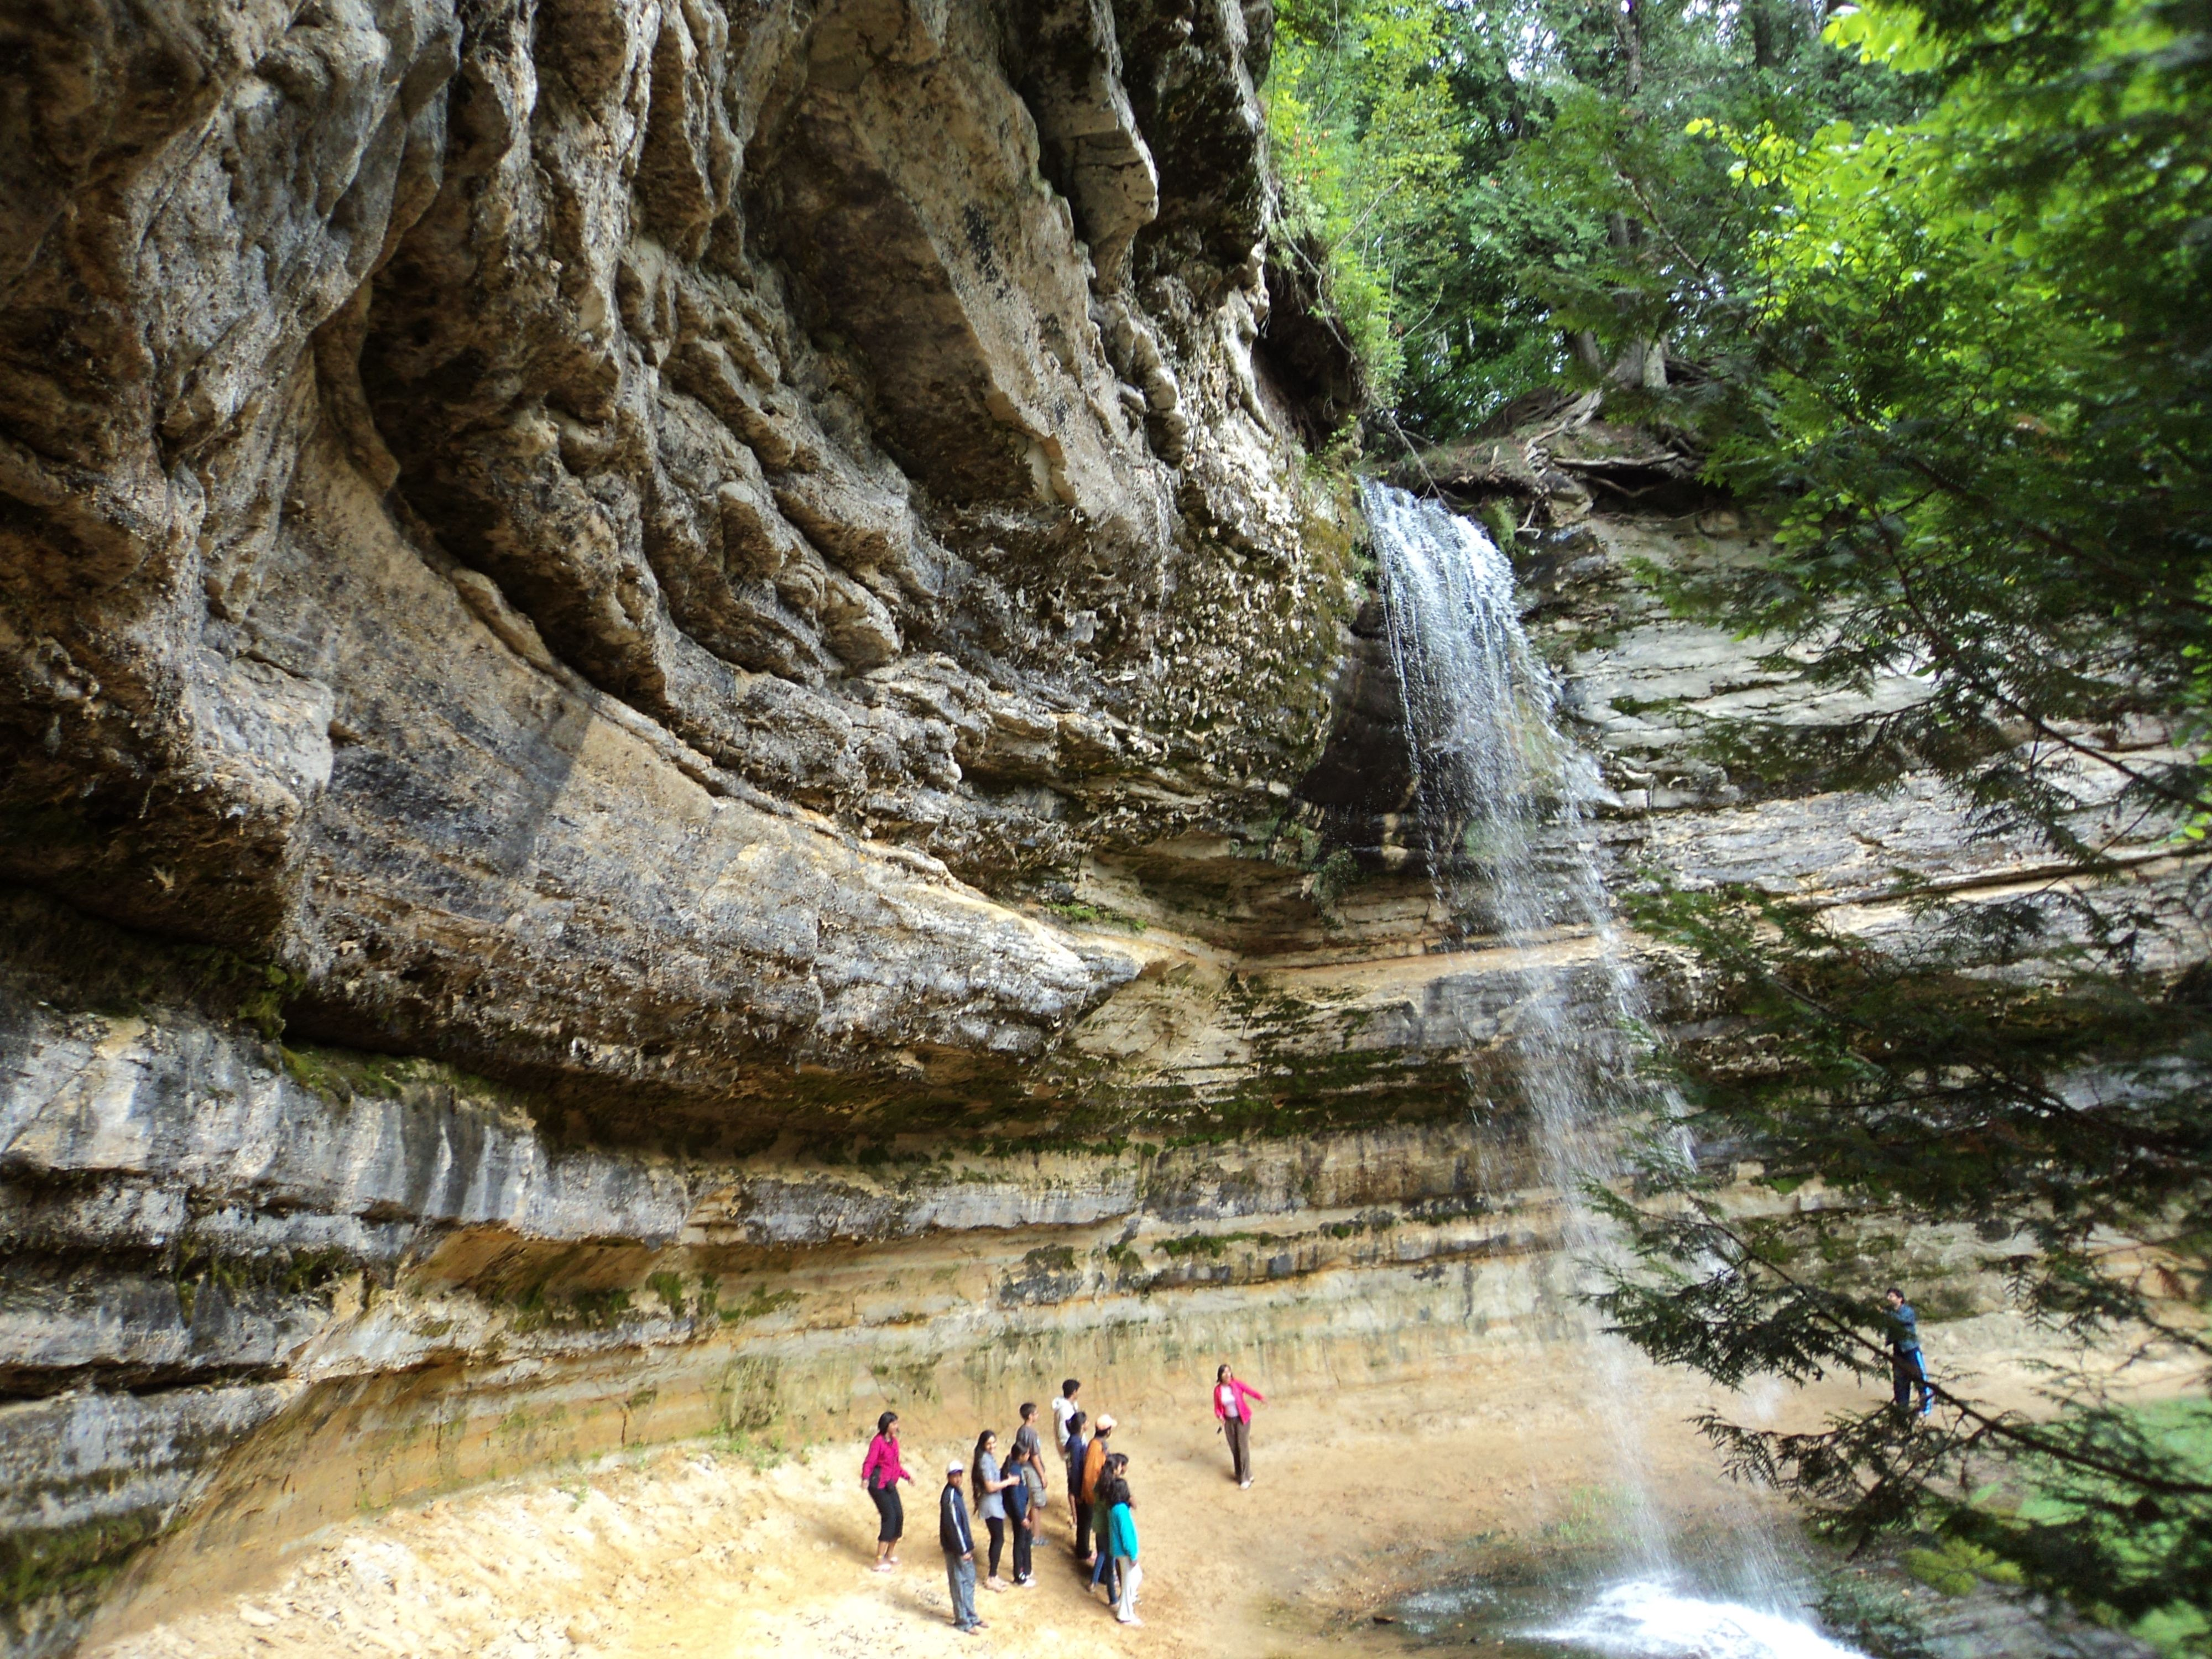 munising personals Munising is well known for its hospitality and wide variety of great hotels, motels, resorts, and cabins let us help you select the lodging that will accommodate your upper michigan vacation plans&nbsp we invite you to join us in the middle of mic.